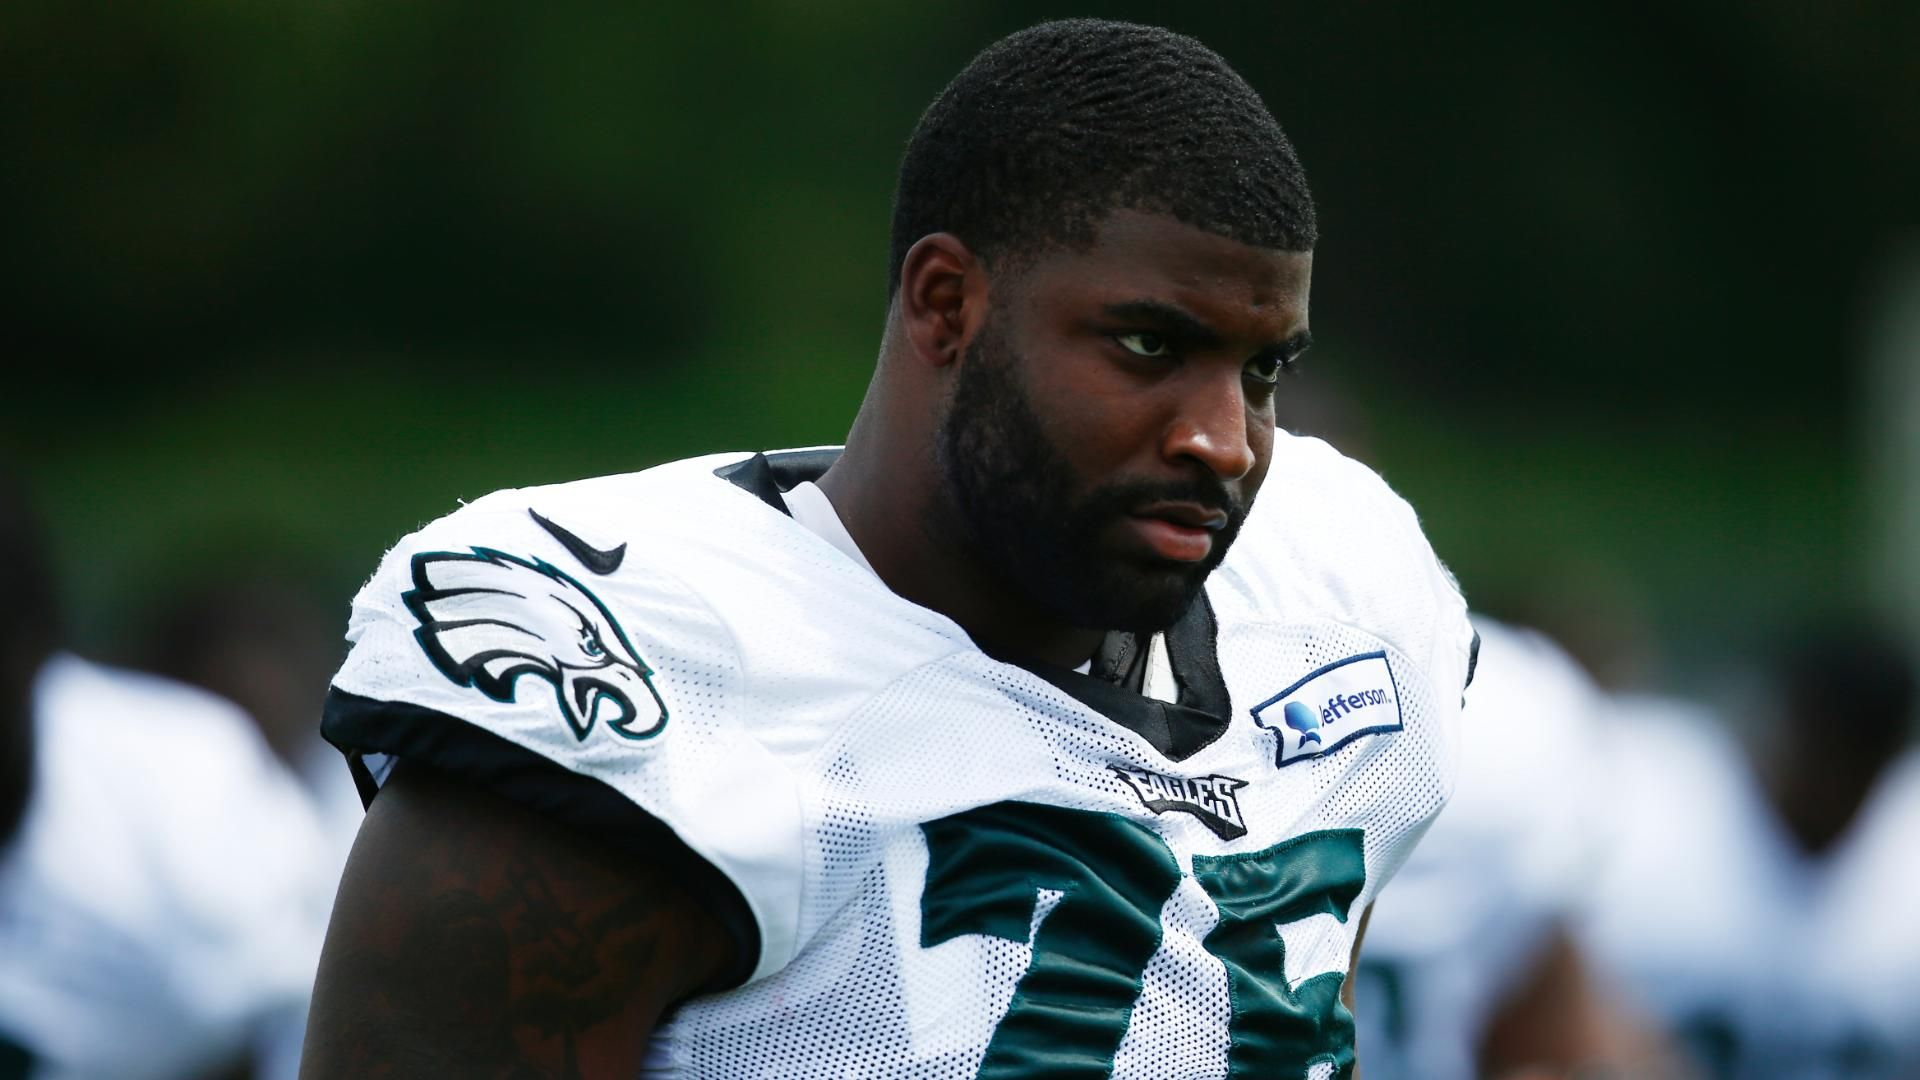 Riddick: Eagles placing big bet on Vinny Curry